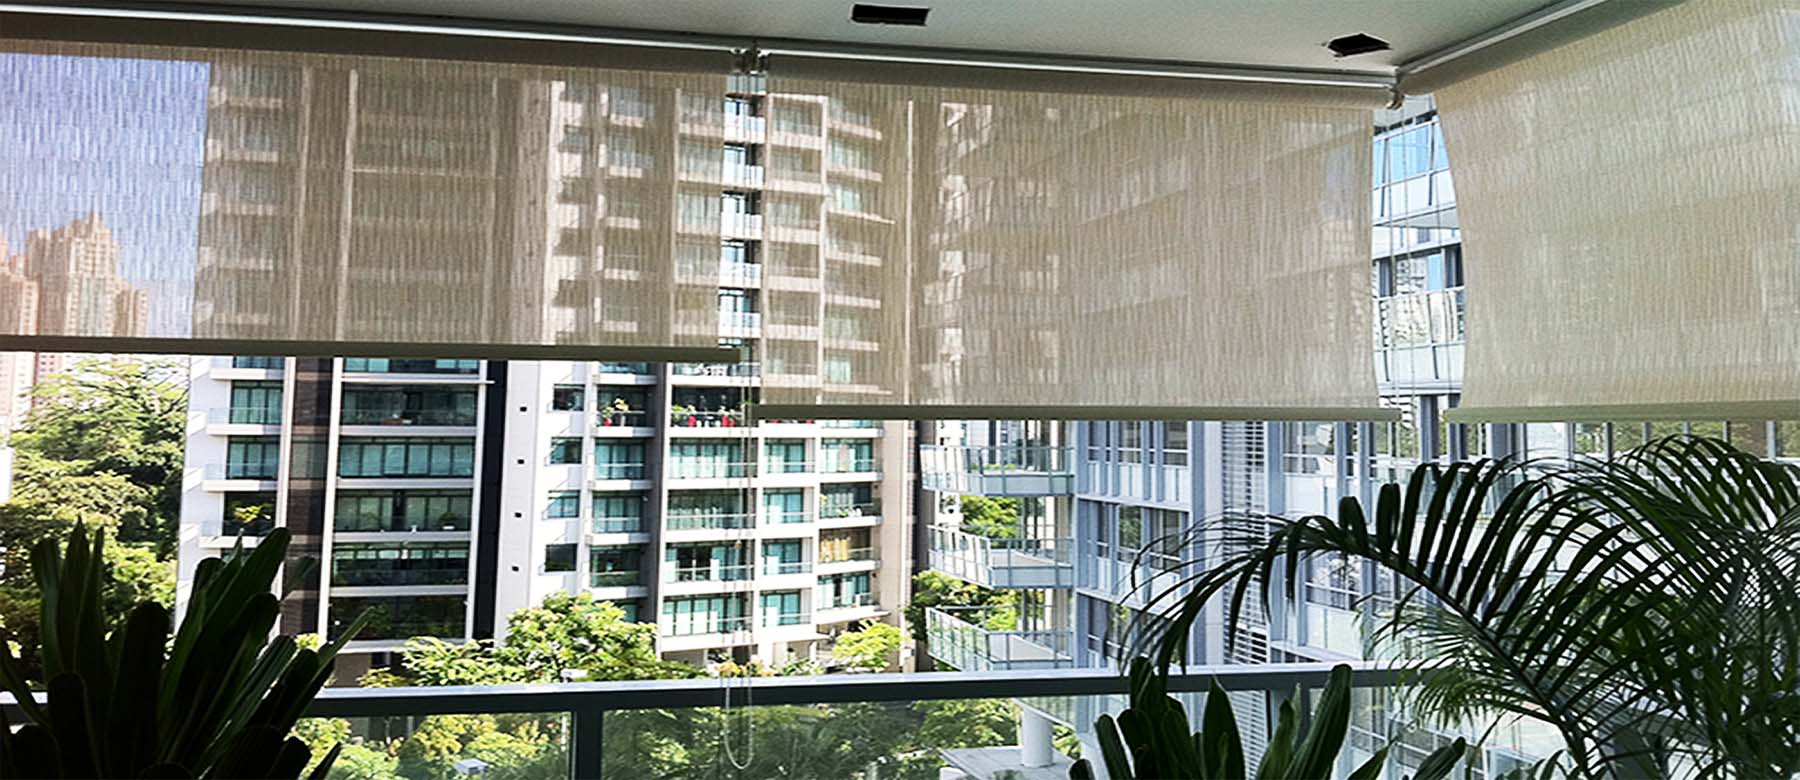 Outdoor Roller Blinds at Balcony